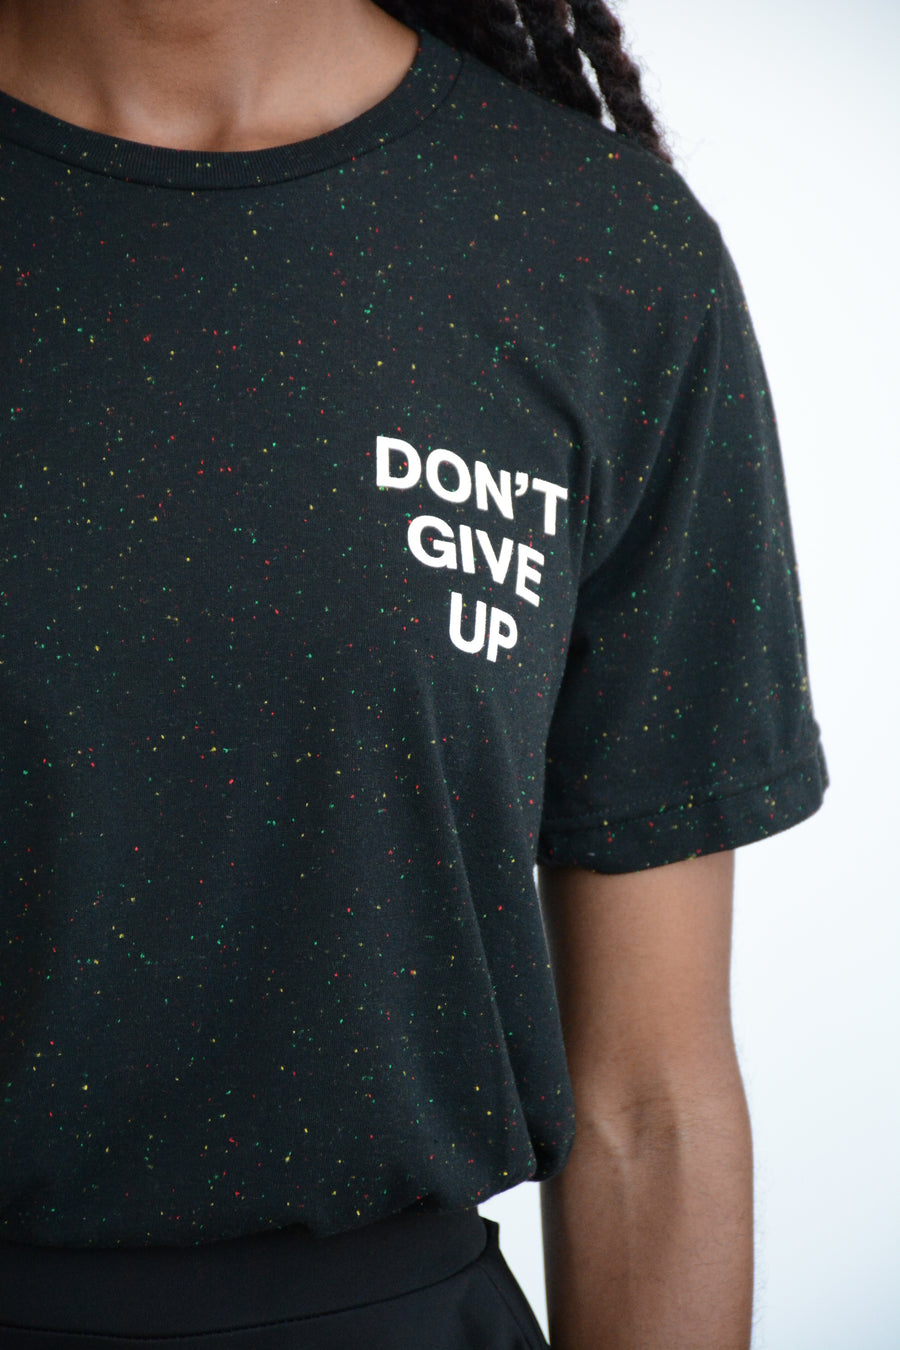 DON'T GIVE UP Unisex Galaxy Tee